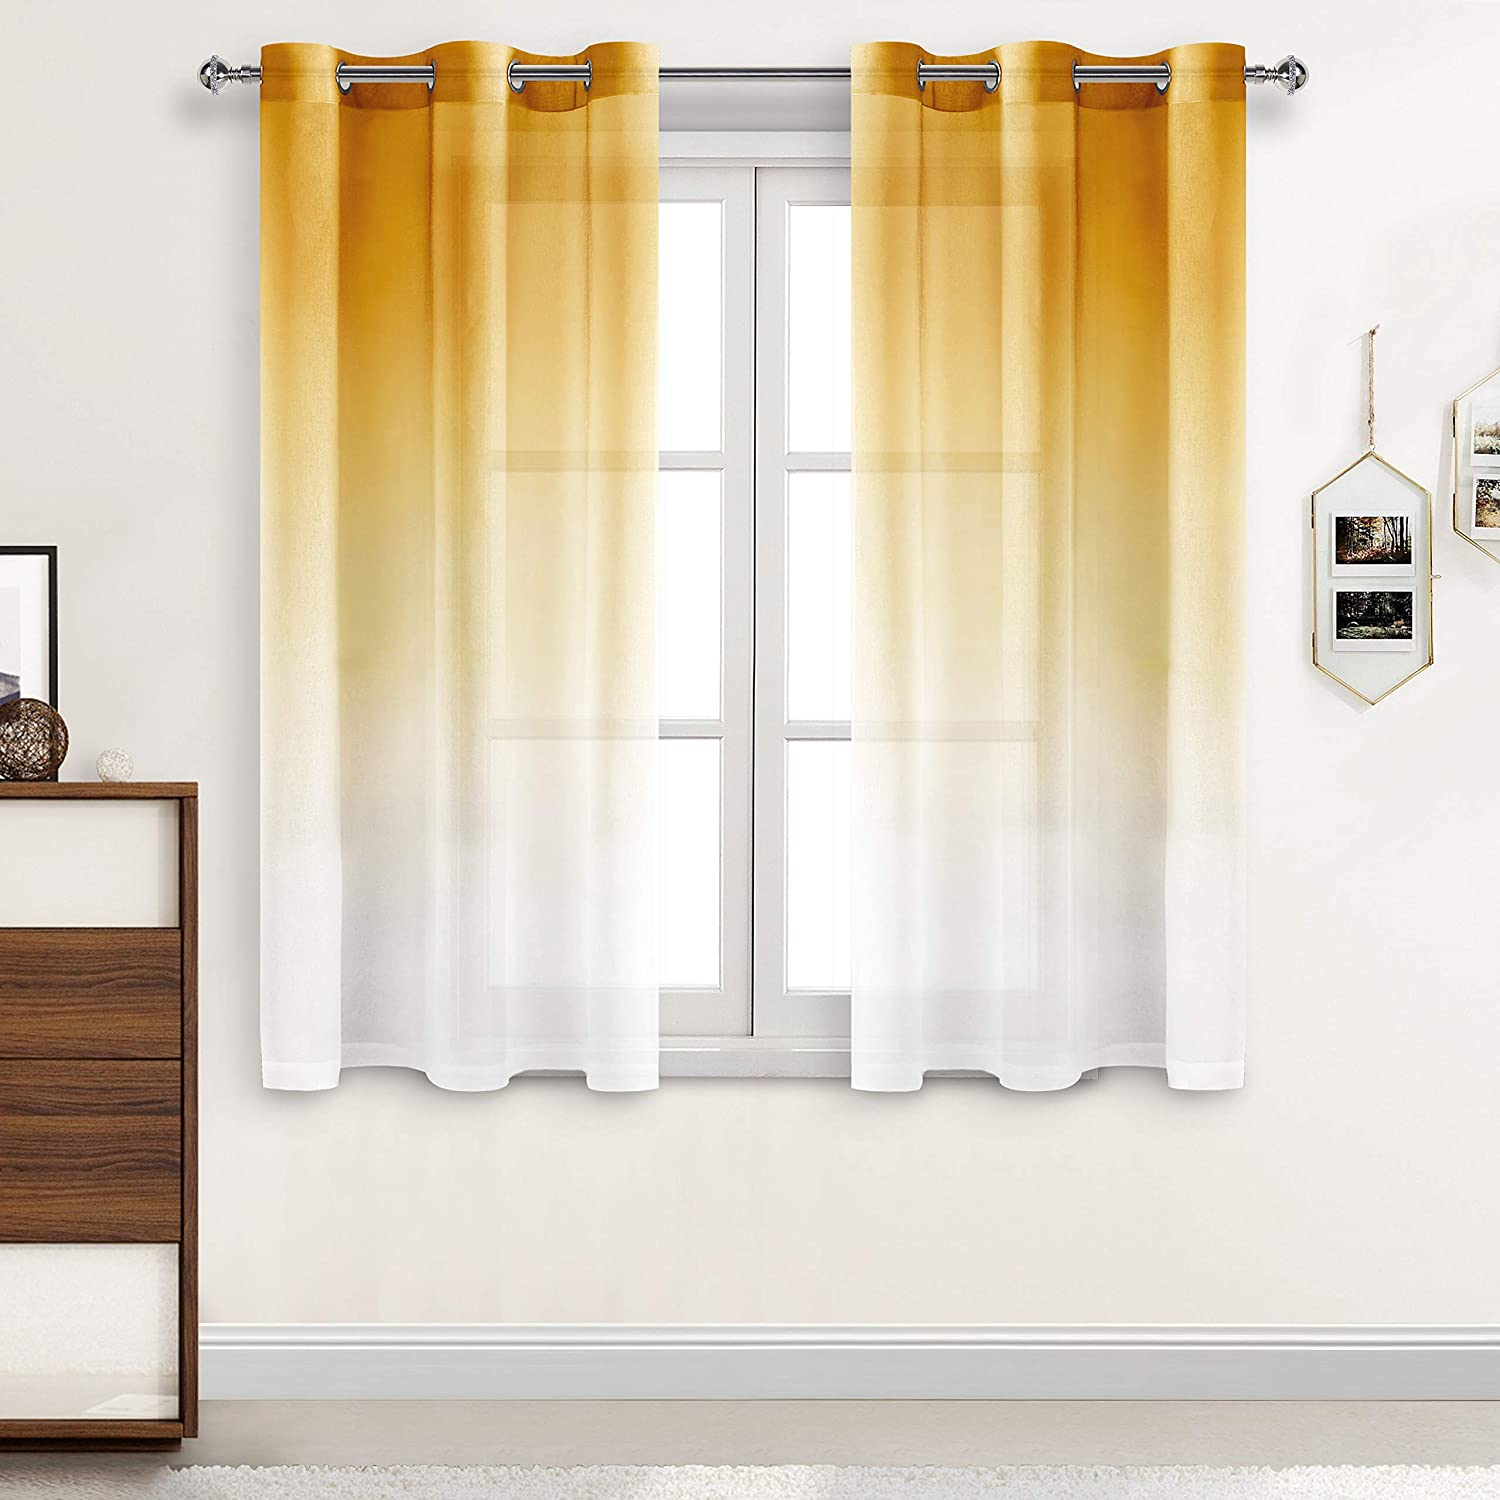 DWCN Faux Outlet ☆ Free Shipping Linen Ombre latest Sheer Curtains - Gradient Semi Voile Gromm